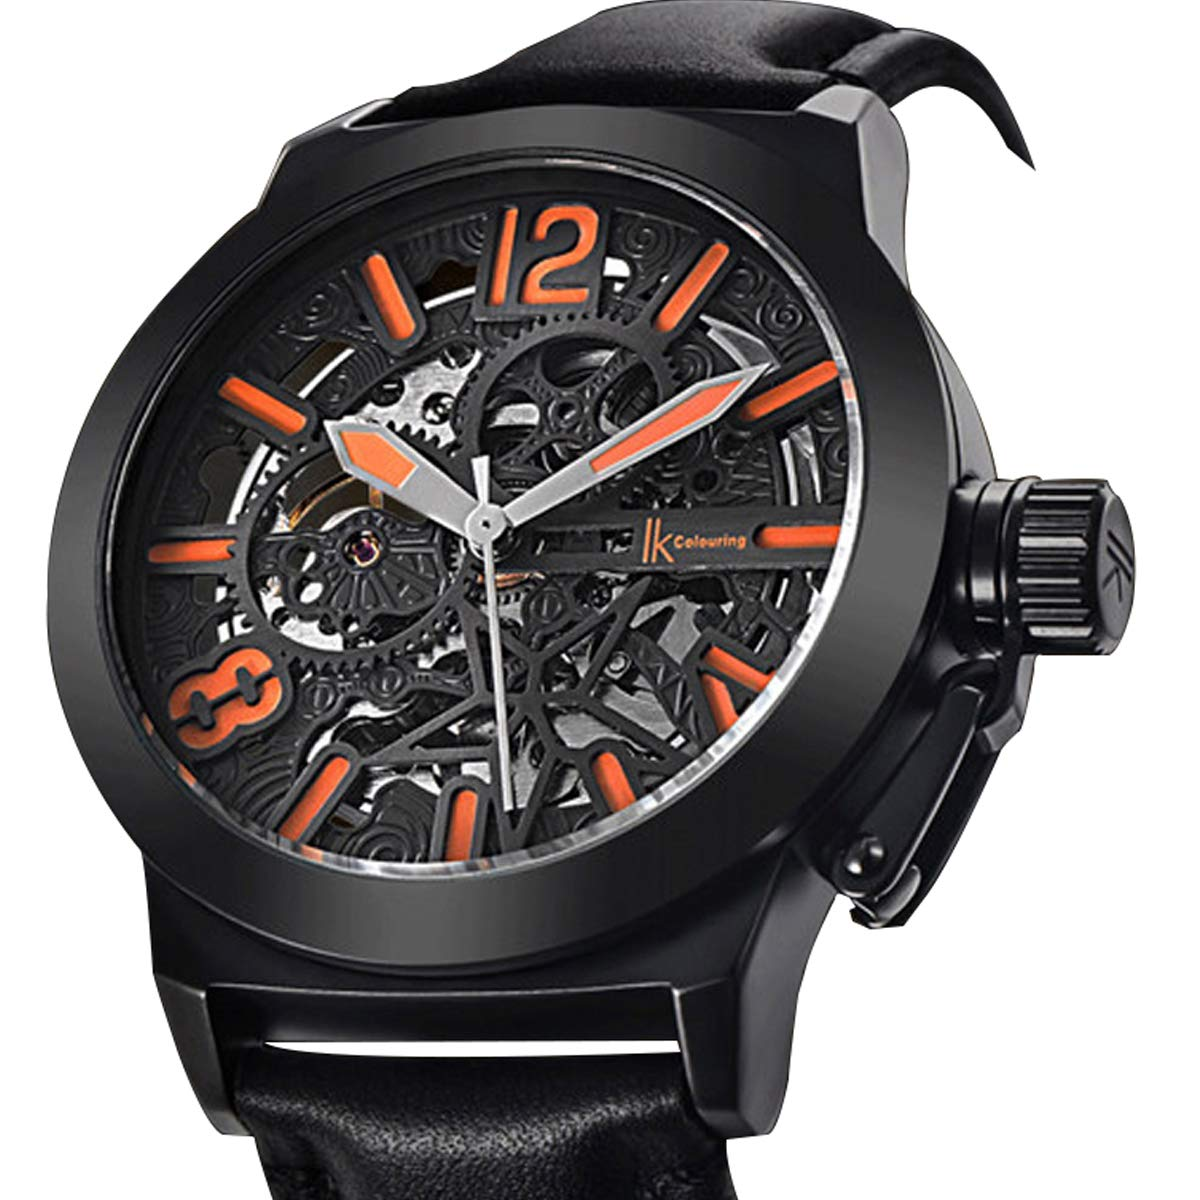 Gute Mechanical Men Automatic Watch, Motion Style Tone Self Winding Genuine Black Leather Band Watch by GLEIM (Image #1)